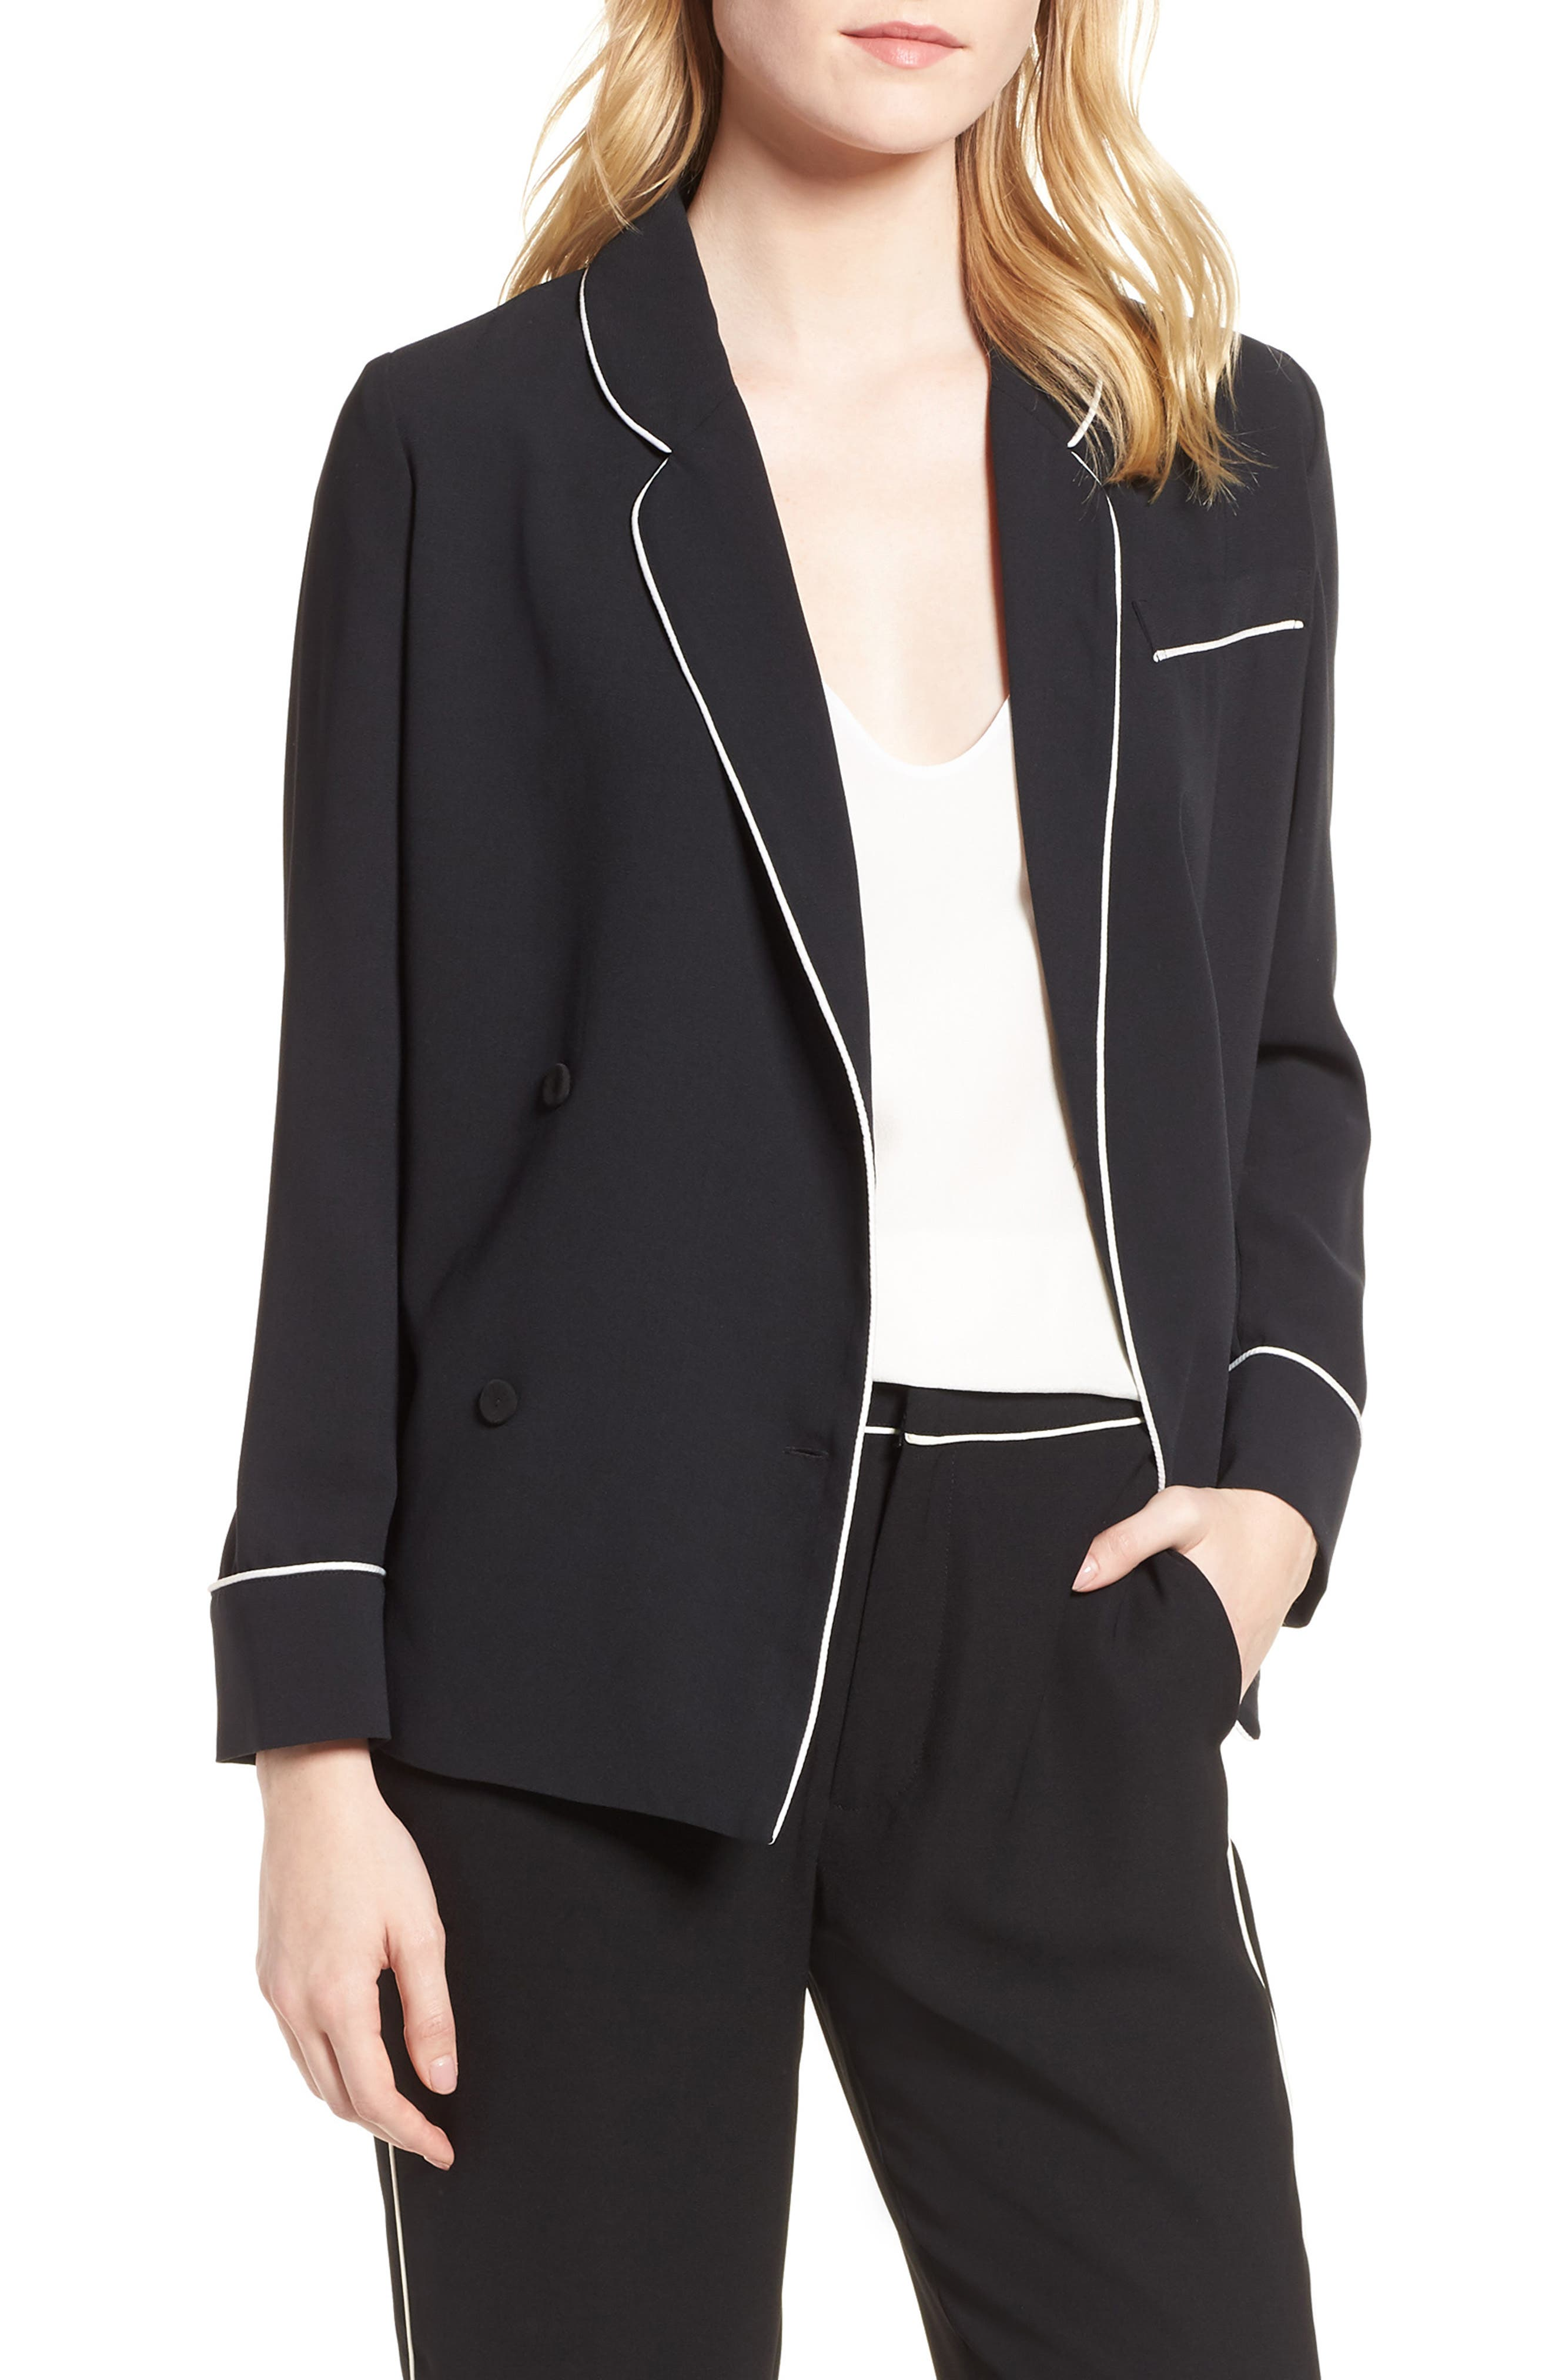 Double Breasted Jacket,                         Main,                         color, BLACK/ BRIGHT WHITE PIPING